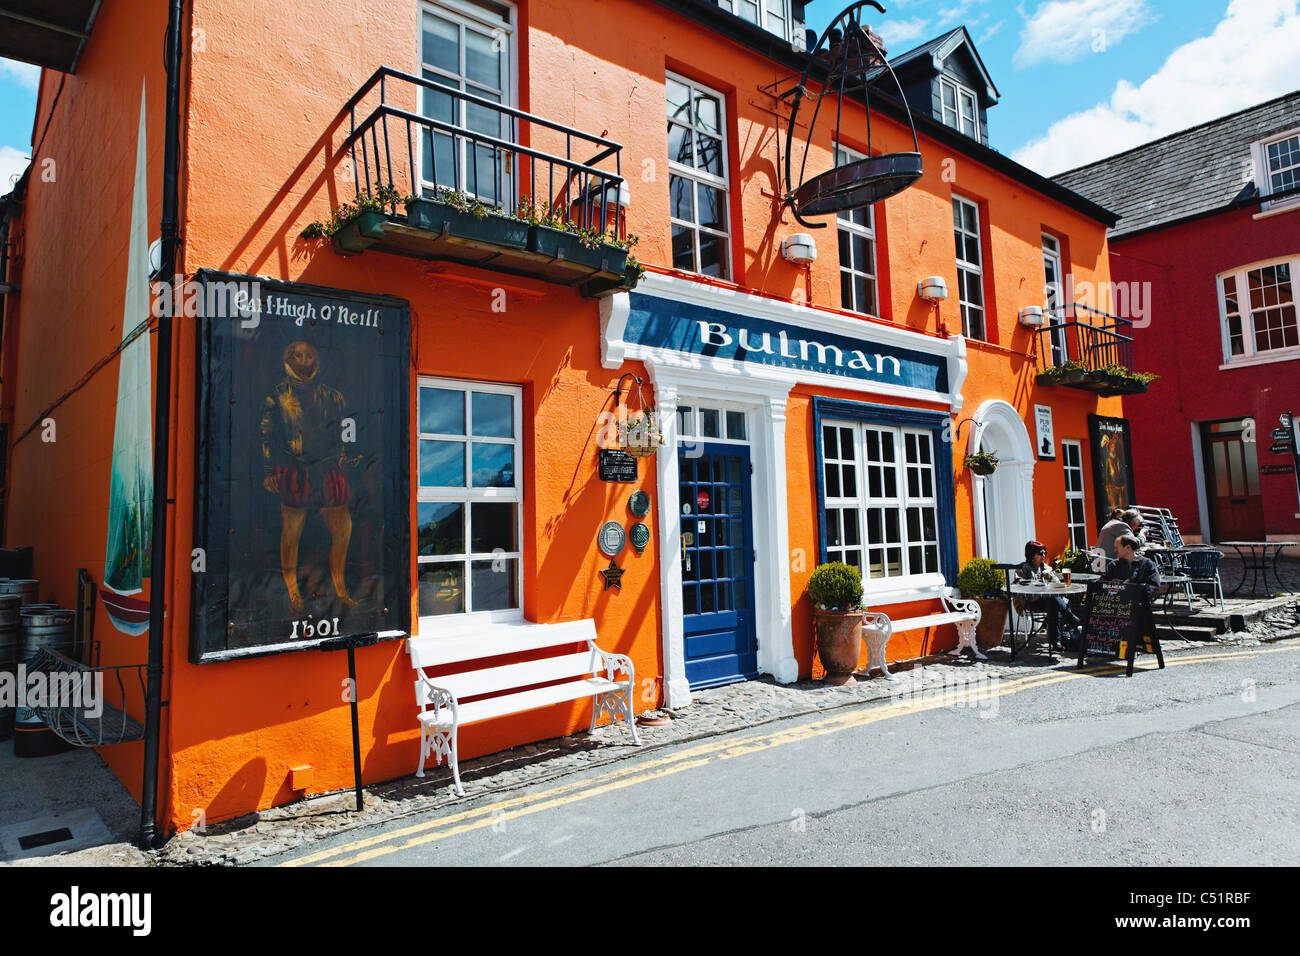 Island Pub Ireland High Resolution Stock Photography And Images Alamy